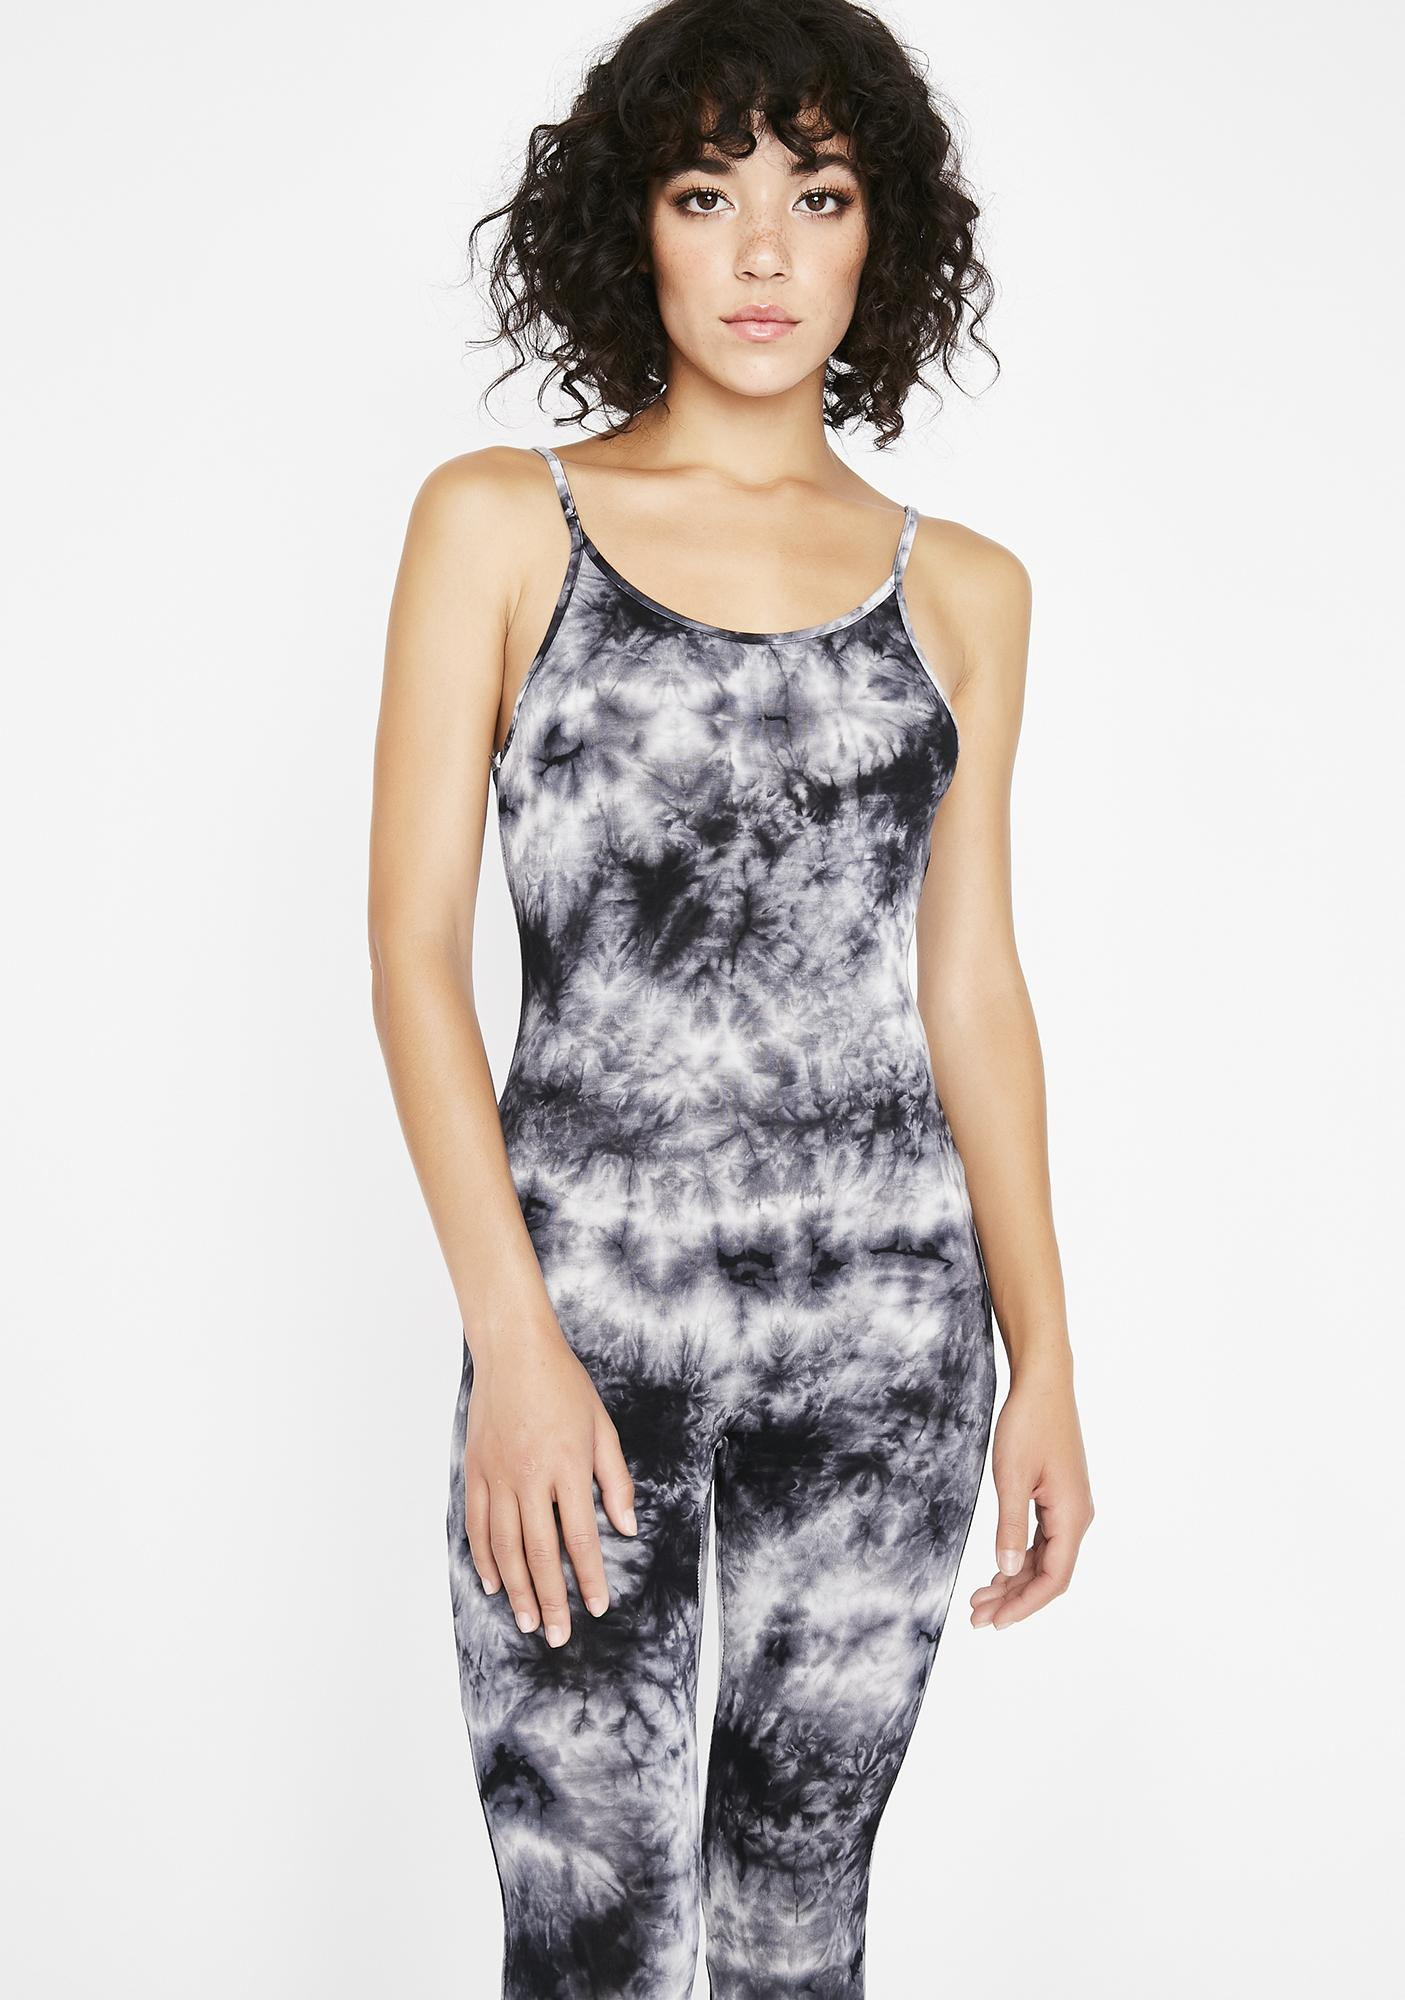 Bewitched Tie-Dye Catsuit